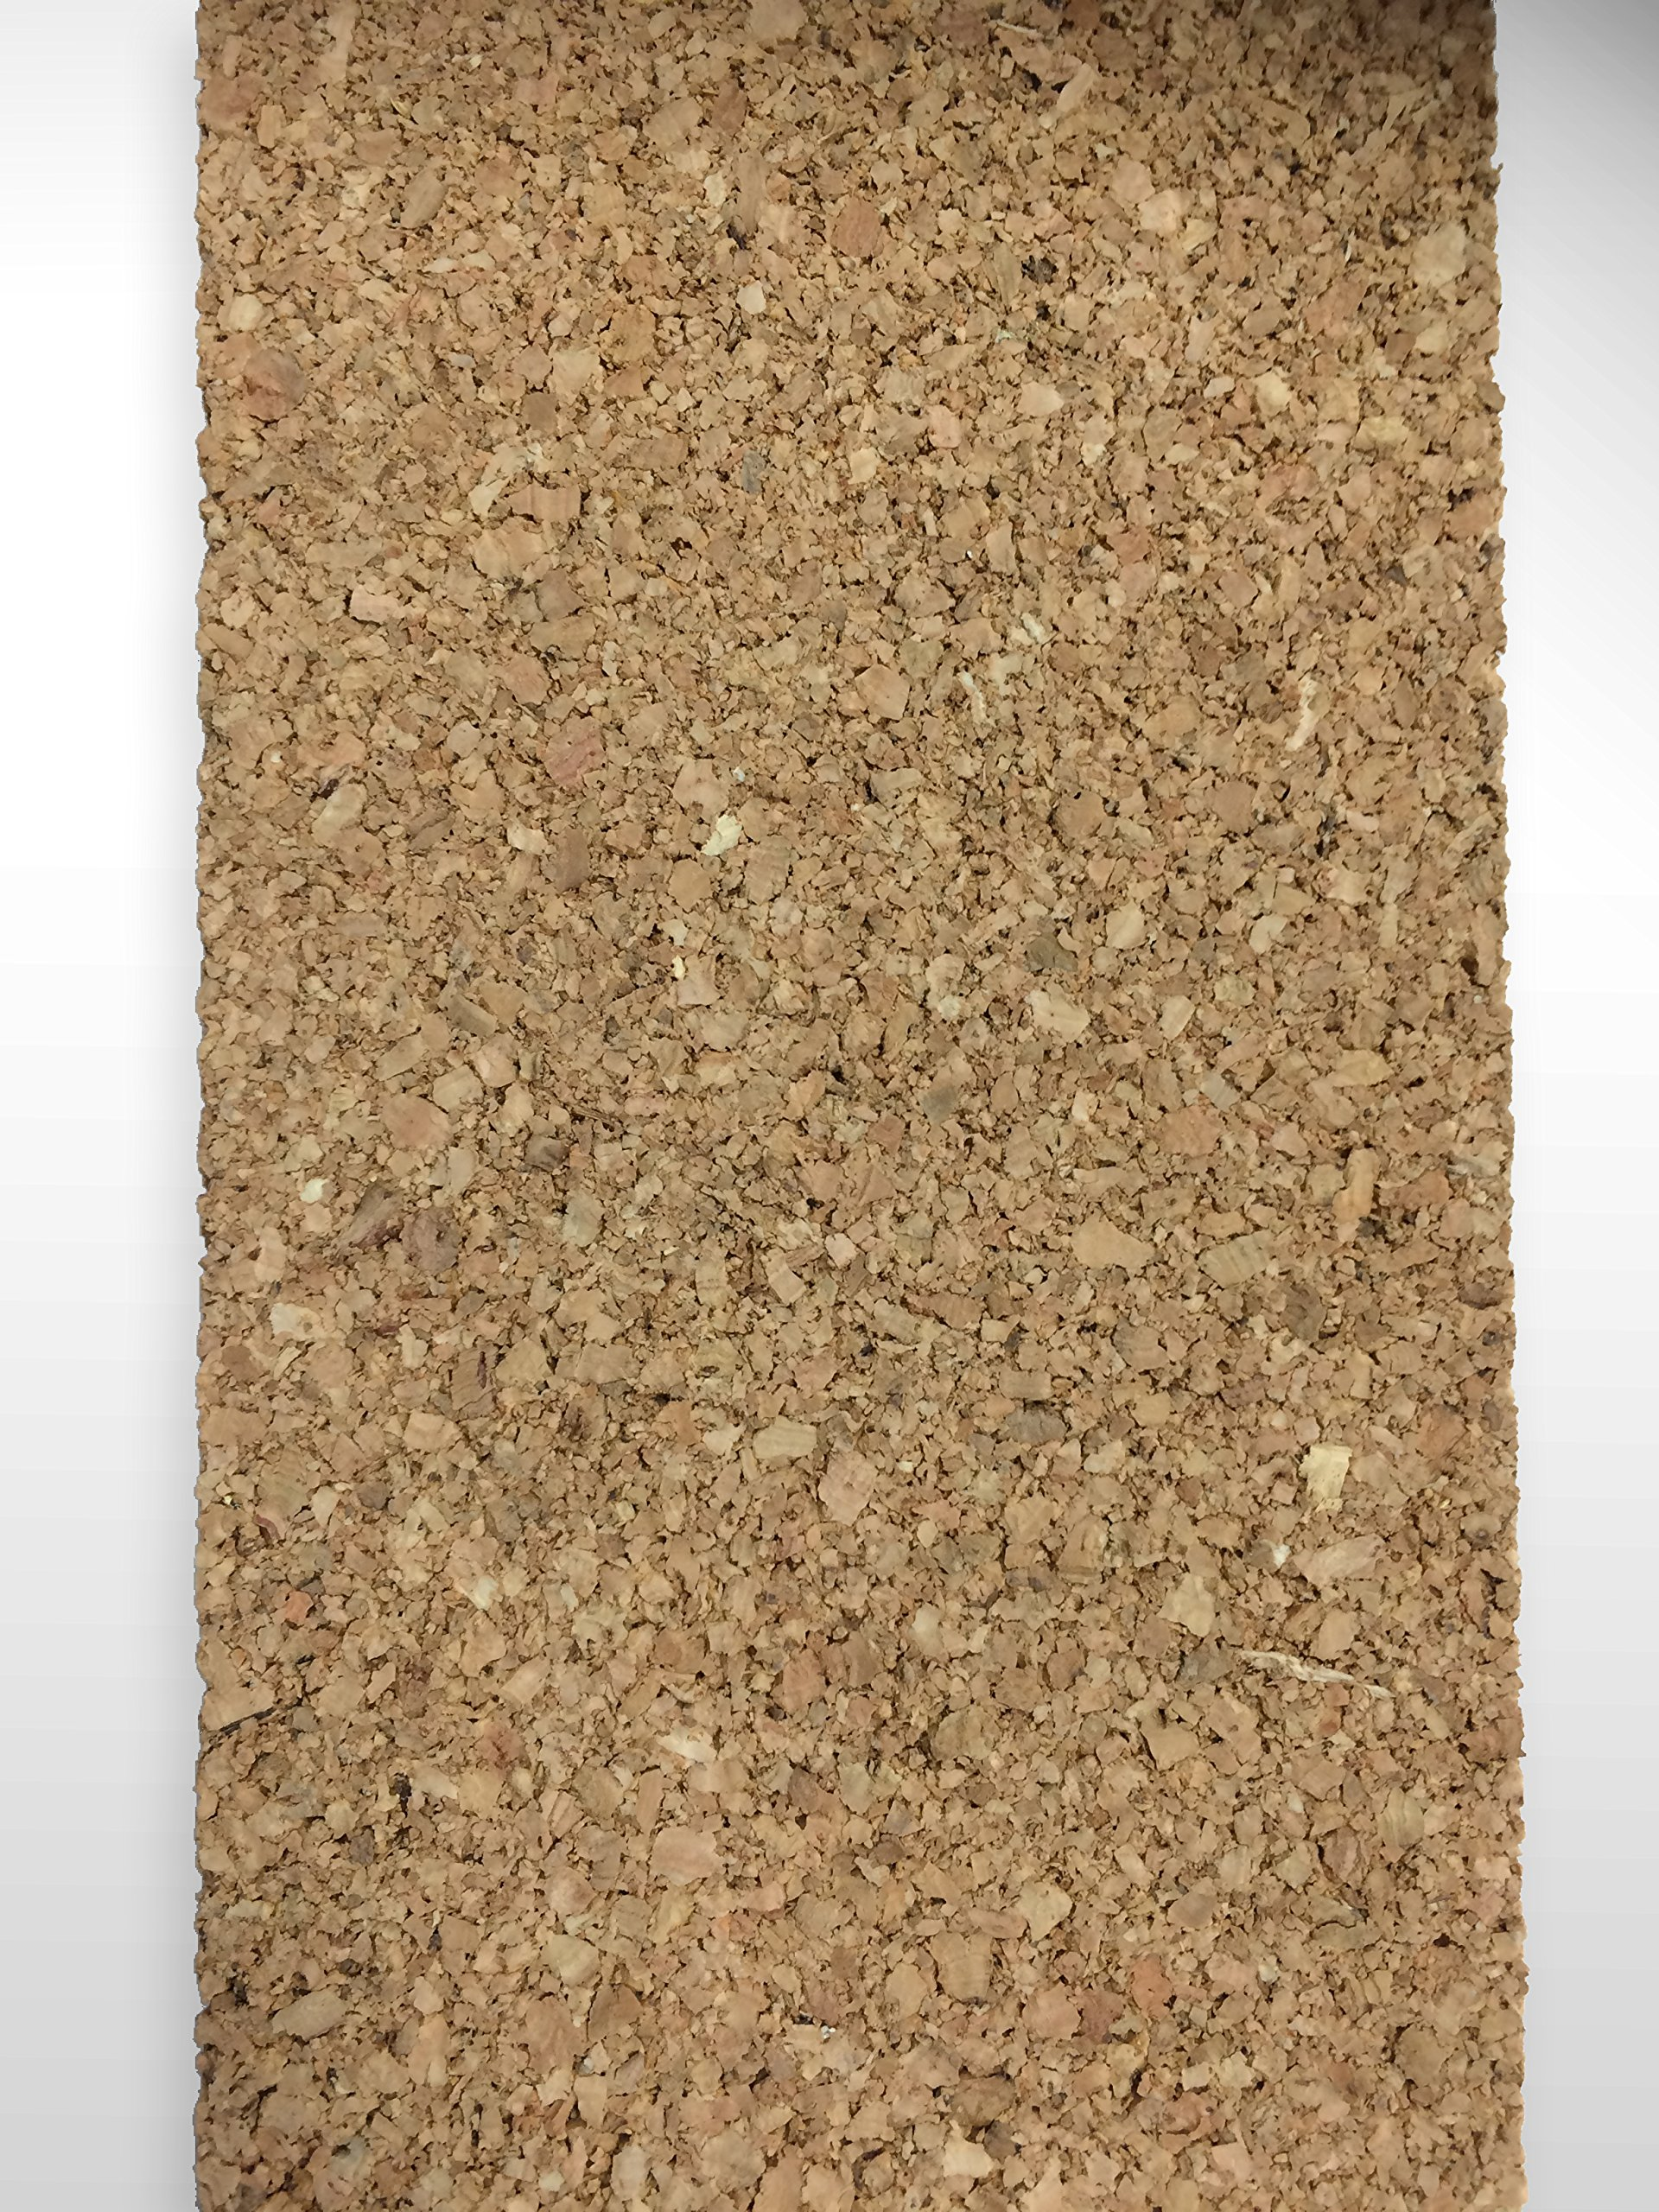 Thick Multi Purpose Cork Strips (8 Pack) Classroom Bulletin Board Bar 36x3.5x0.5 Inches by Jelinek Cork Group (Image #3)